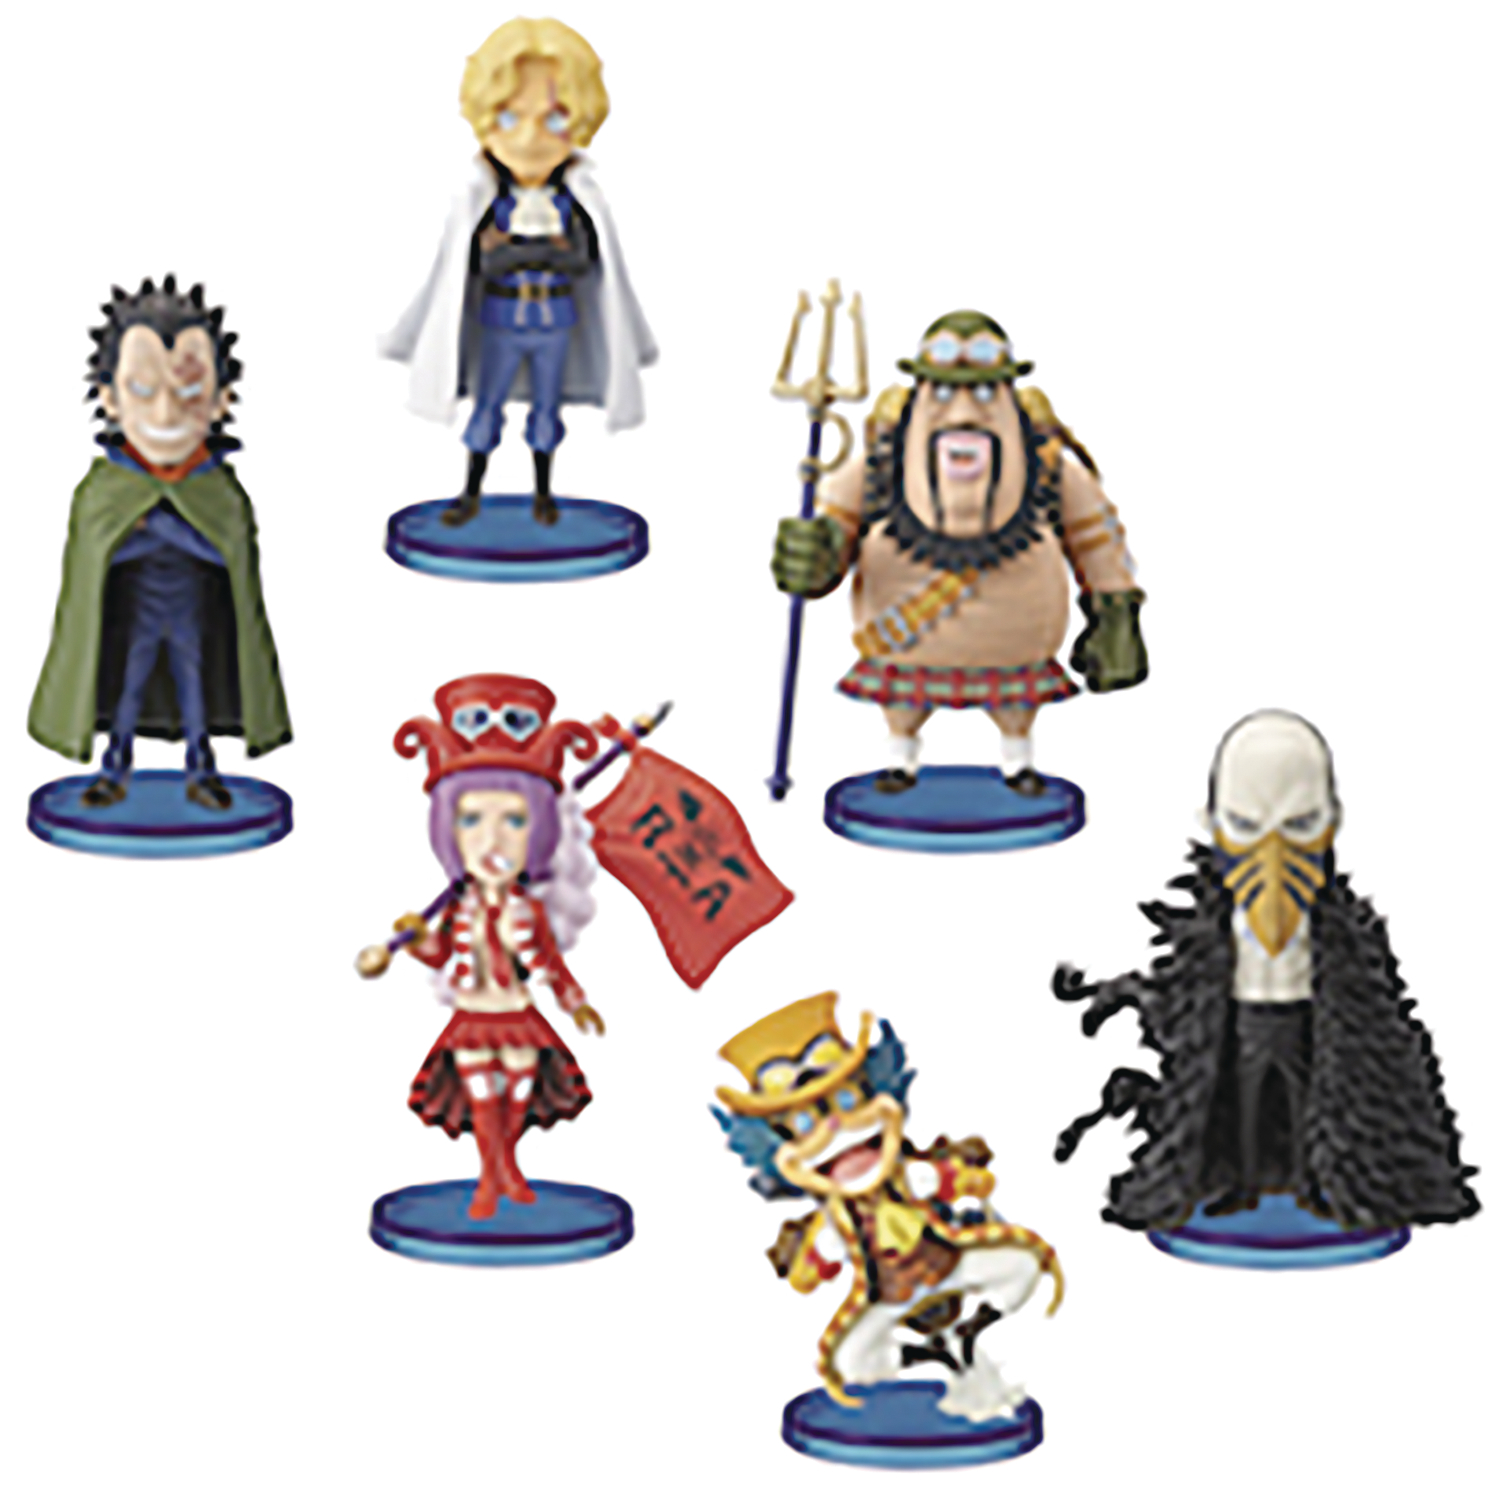 ONE PIECE WORLD REVOLUTIONARY ARMY COLL 6PC BMB FIG ASST